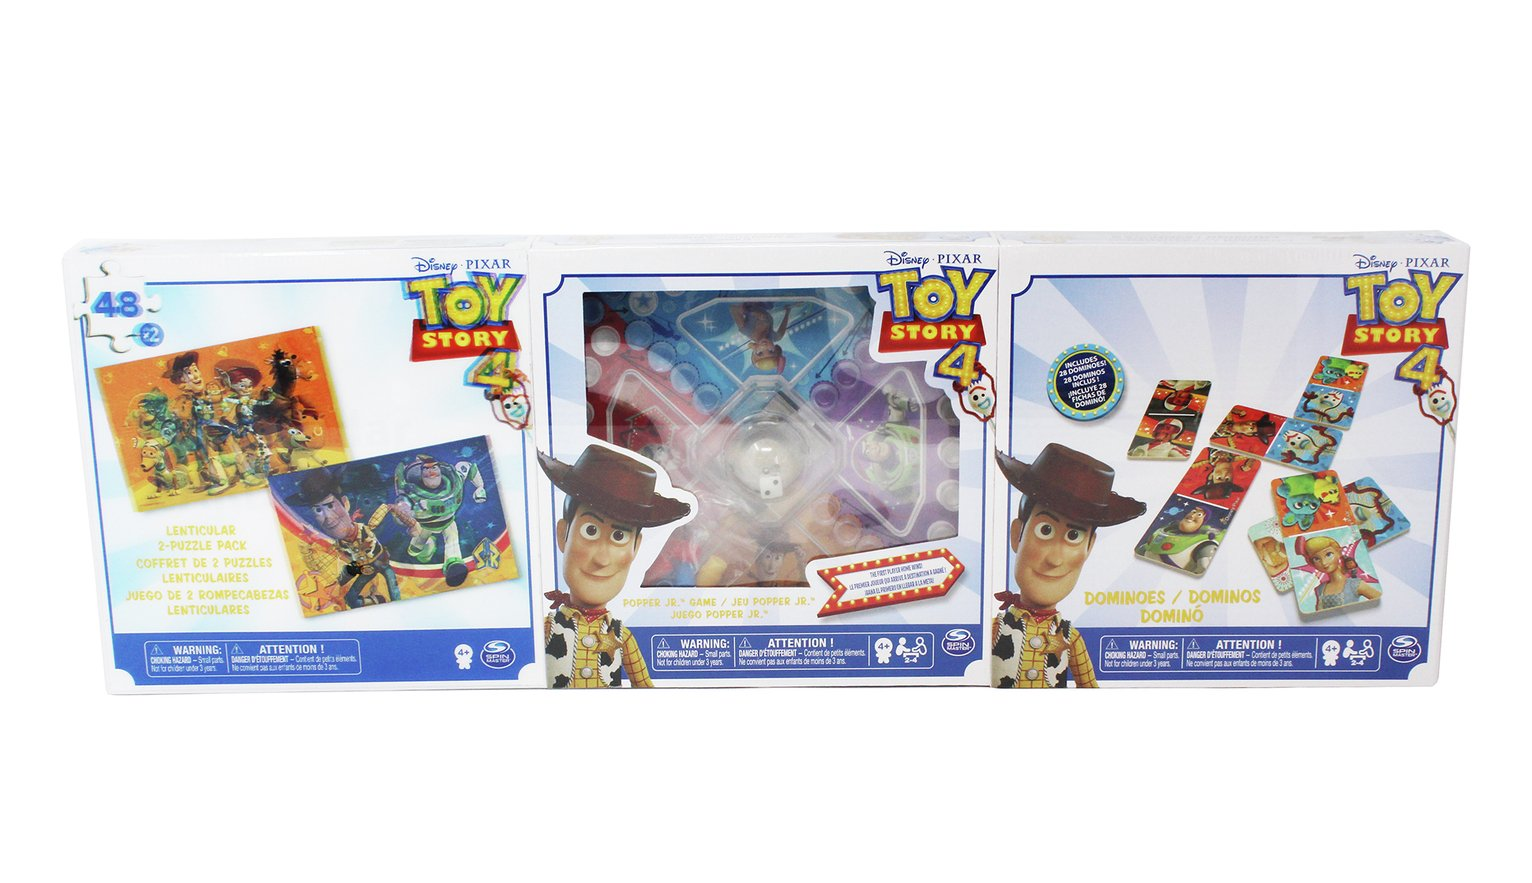 Toy Story 4 Game Bundle - 3 Pack